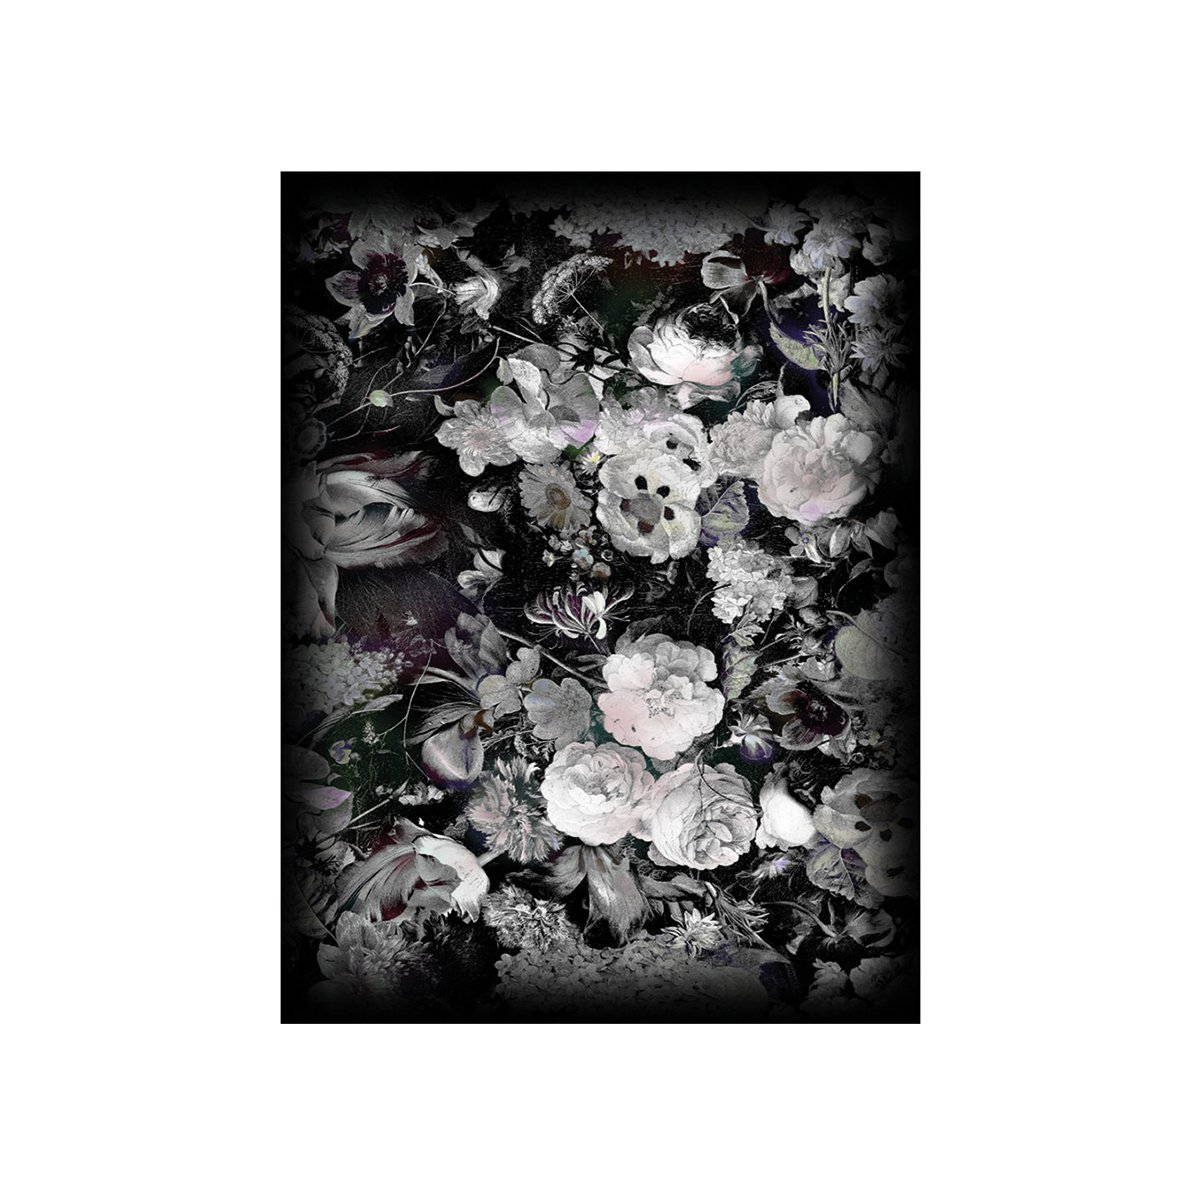 Moooi Carpets Eden Queen B&W Vloerkleed - 200x300 cm. - Low Pile